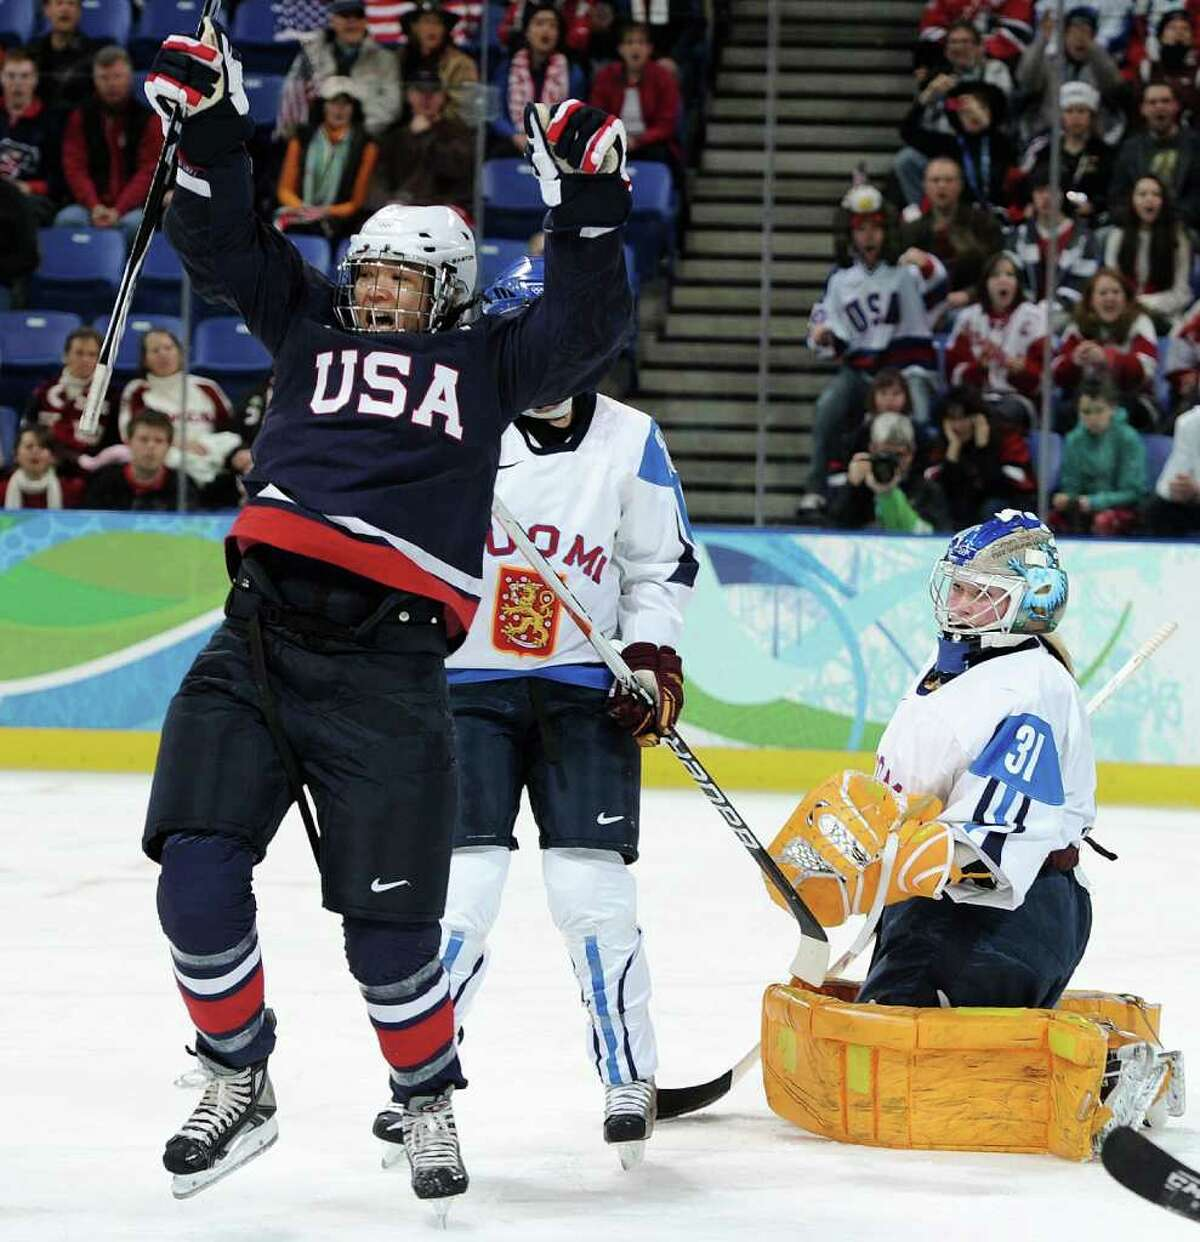 VANCOUVER, BC - FEBRUARY 18: Julie Chu of The United States celebrates scoring their first goal during the ice hockey women's preliminary game between USA and Finland on day 7 of the 2010 Vancouver Winter Olympics at UBC Thunderbird Arena on February 18, 2010 in Vancouver, Canada. (Photo by Harry How/Getty Images)